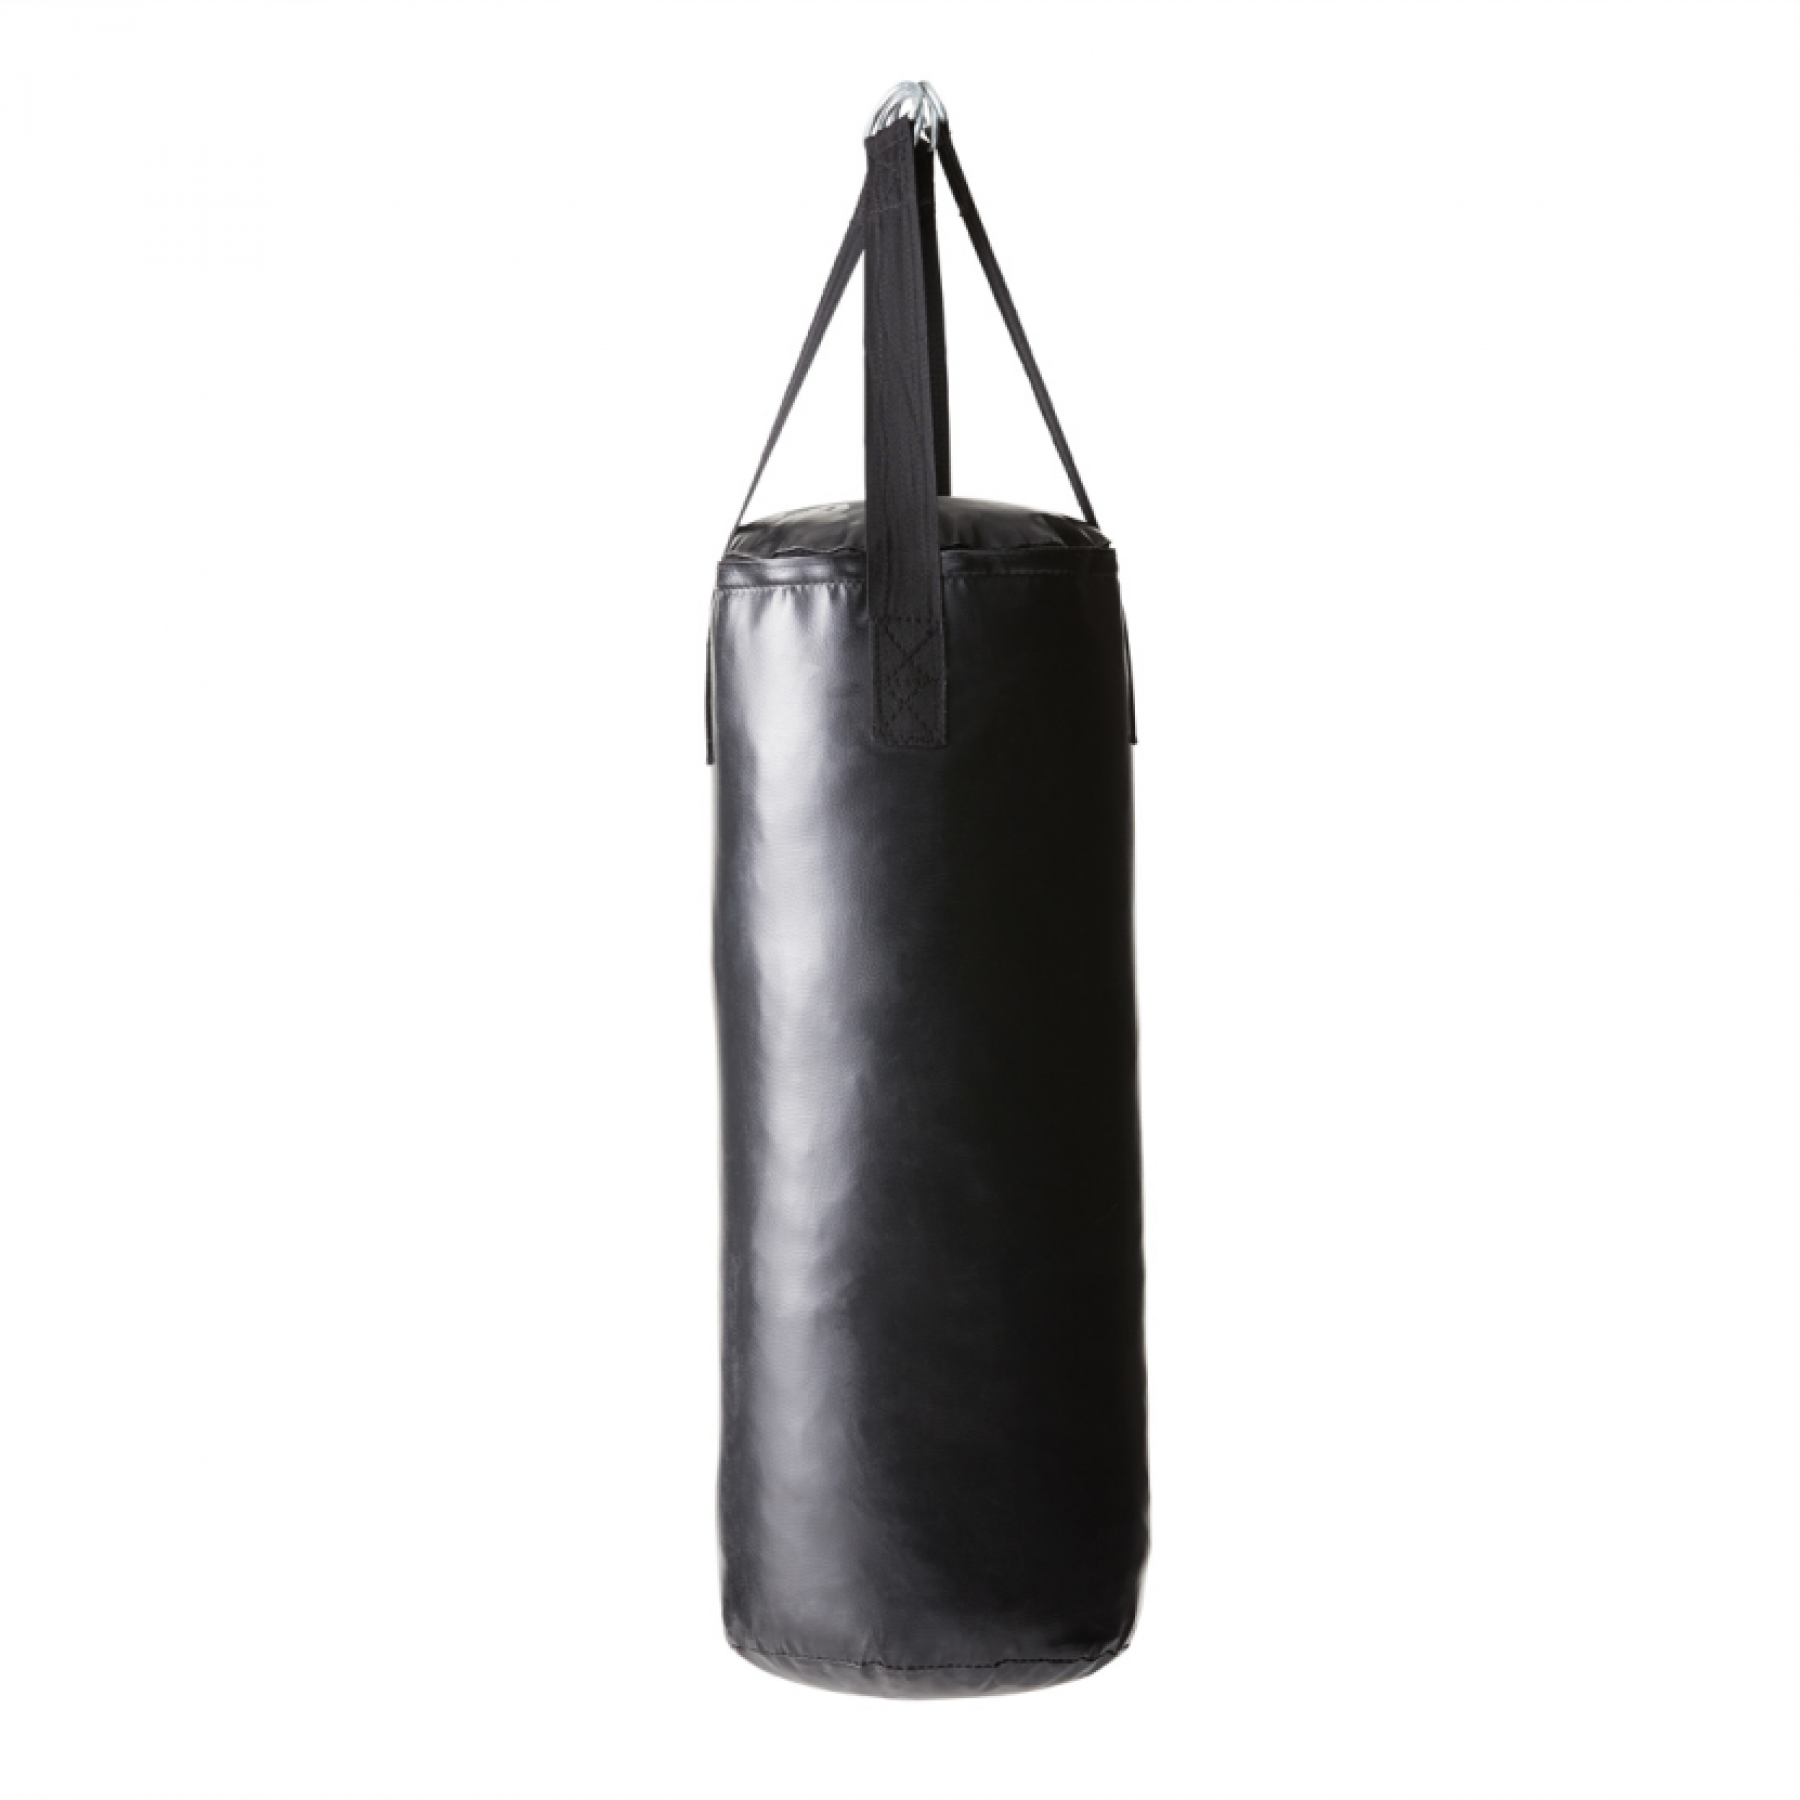 Punching Bag Small - 6.5kg 500mm High